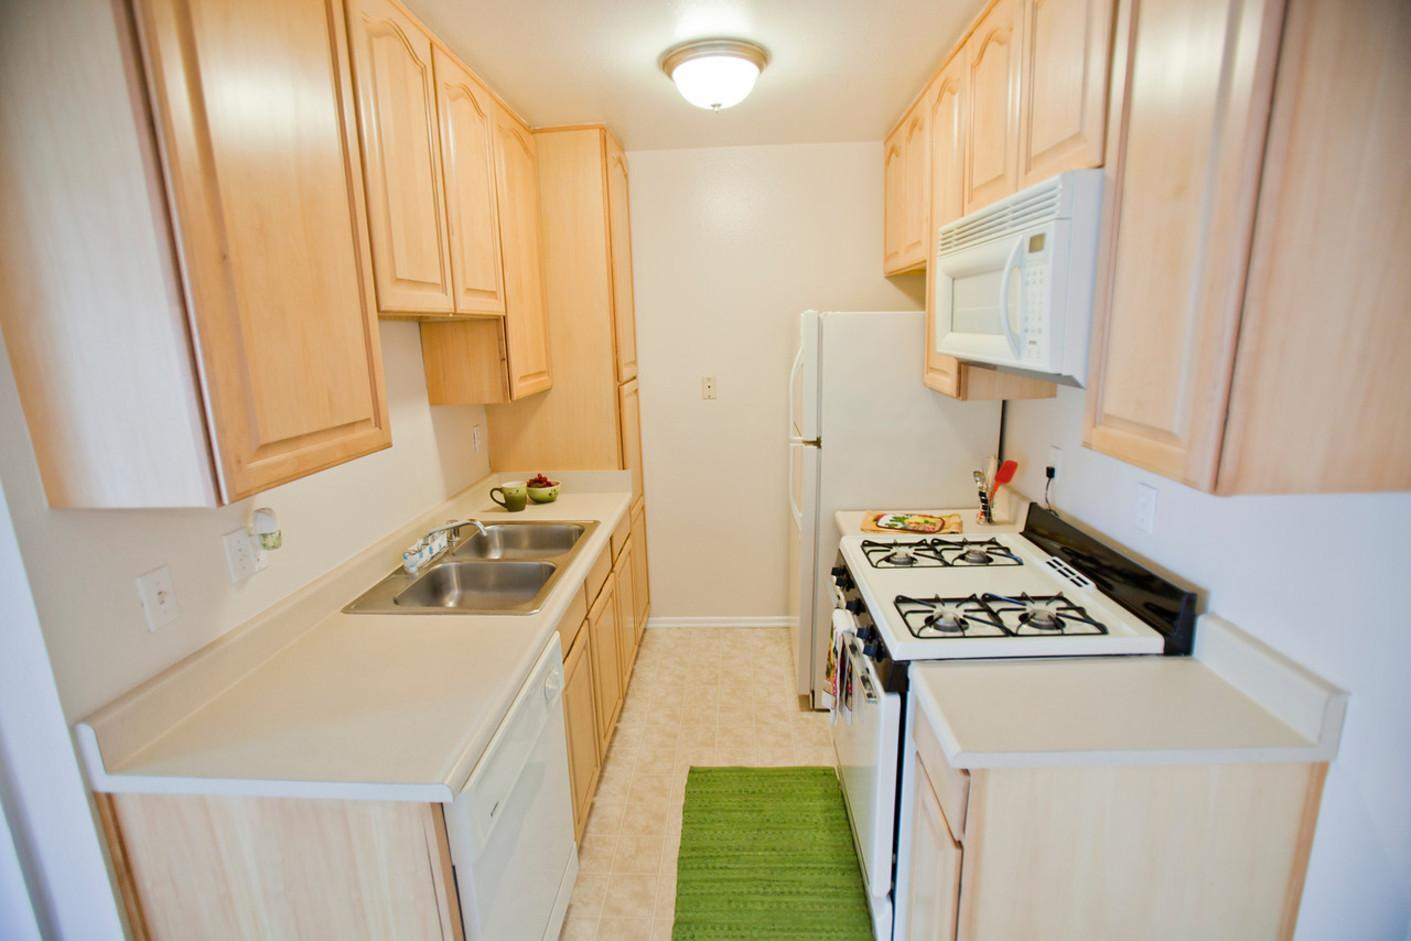 125 W Olive Ave #209, Monrovia, CA - $1,975 USD/ month